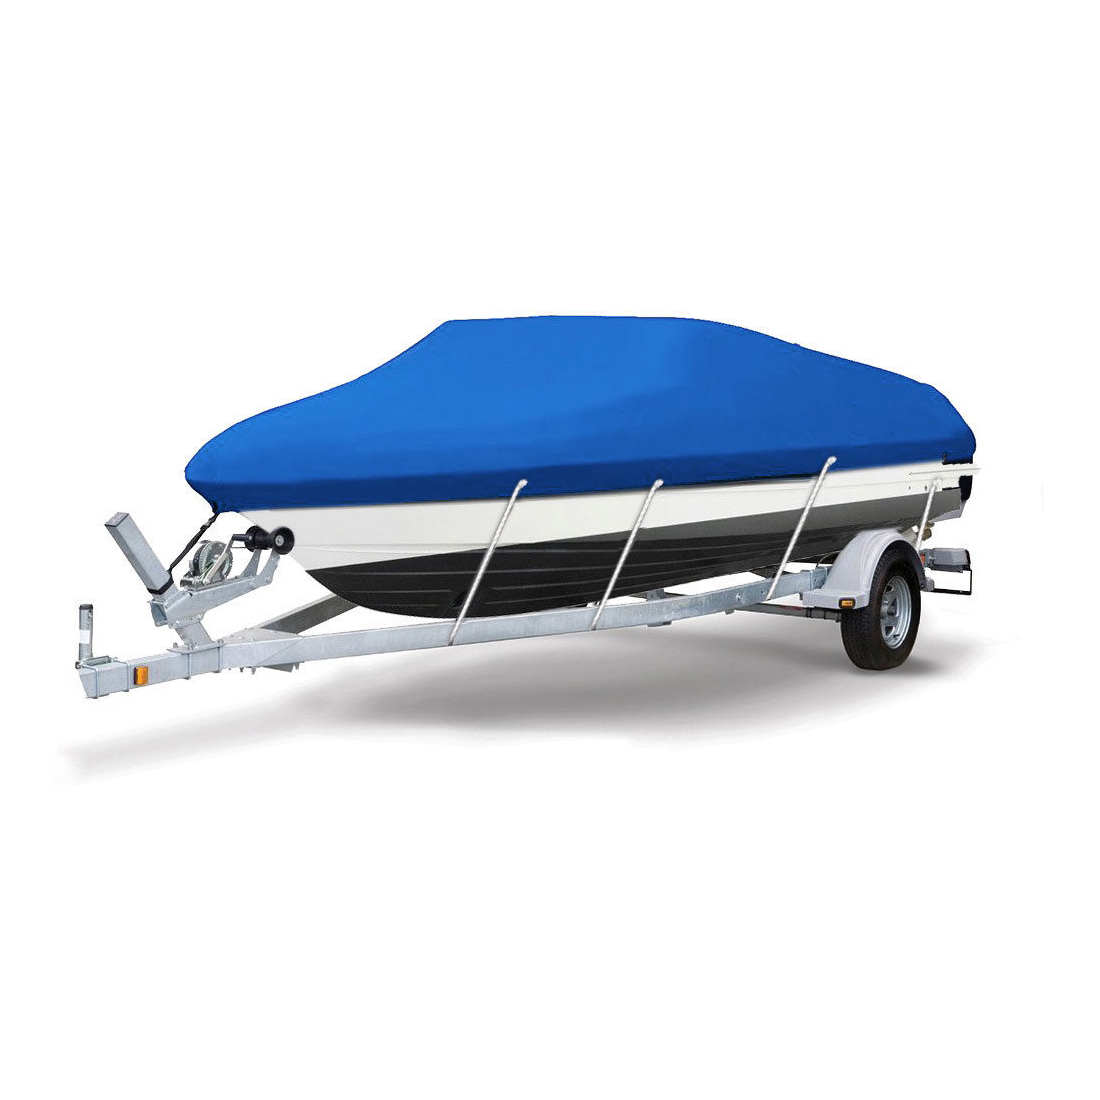 "Blue 210D Waterproof Trailerable Boat Cover Fit 14-16ft Beam 90"" V-Hull Fishing SKI Boat by Yitamotor"